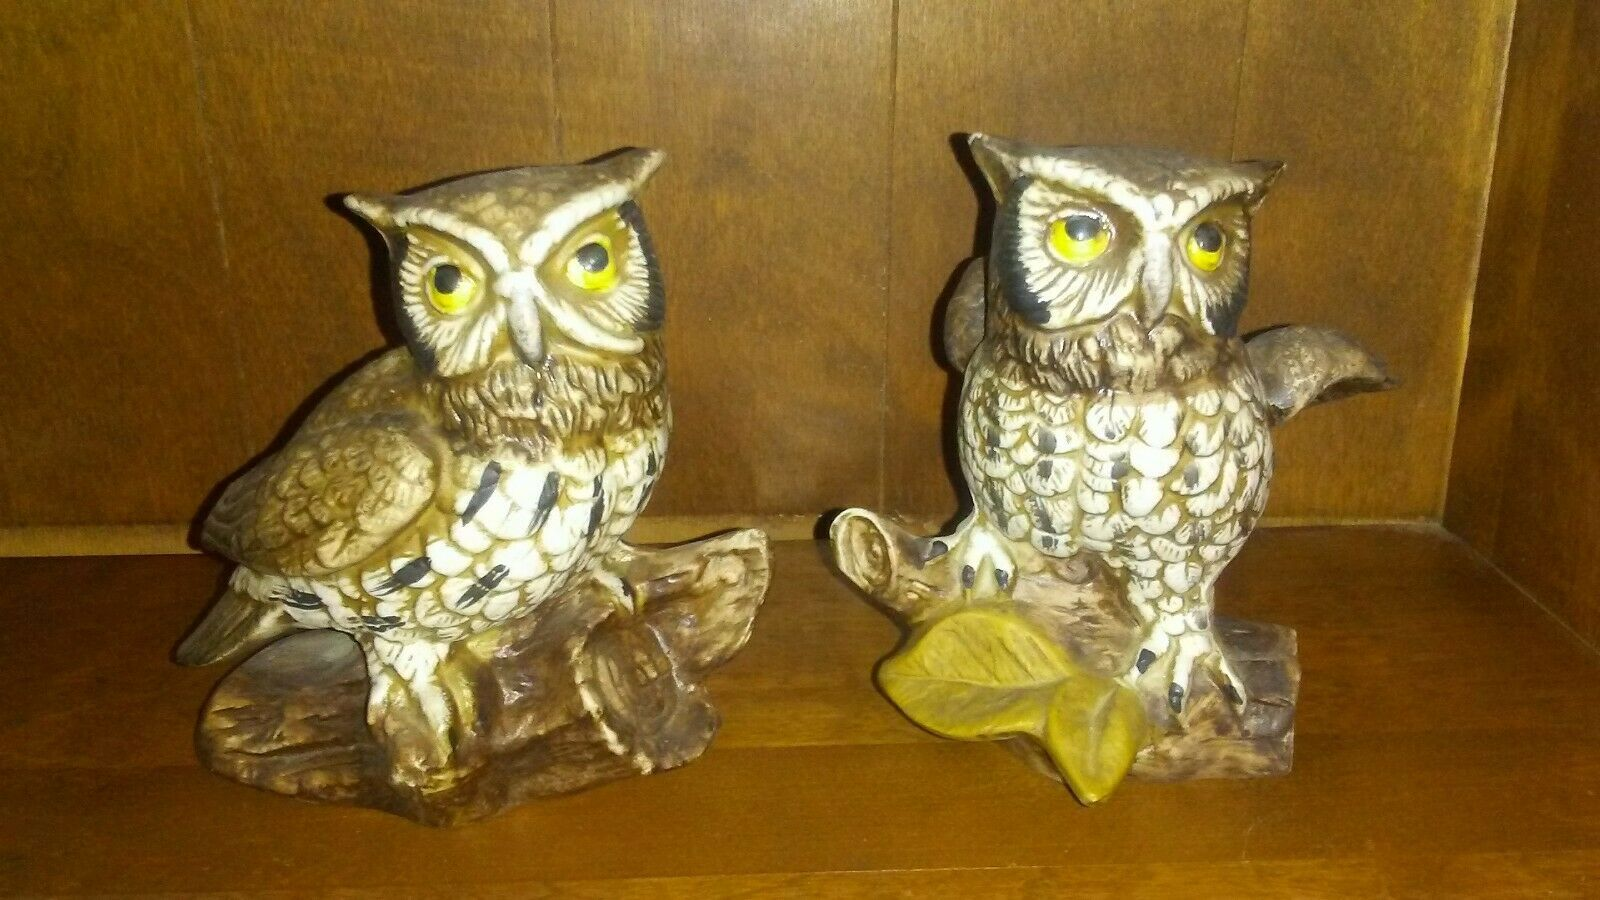 Primary image for Bone China Owl Figures 5 Inch